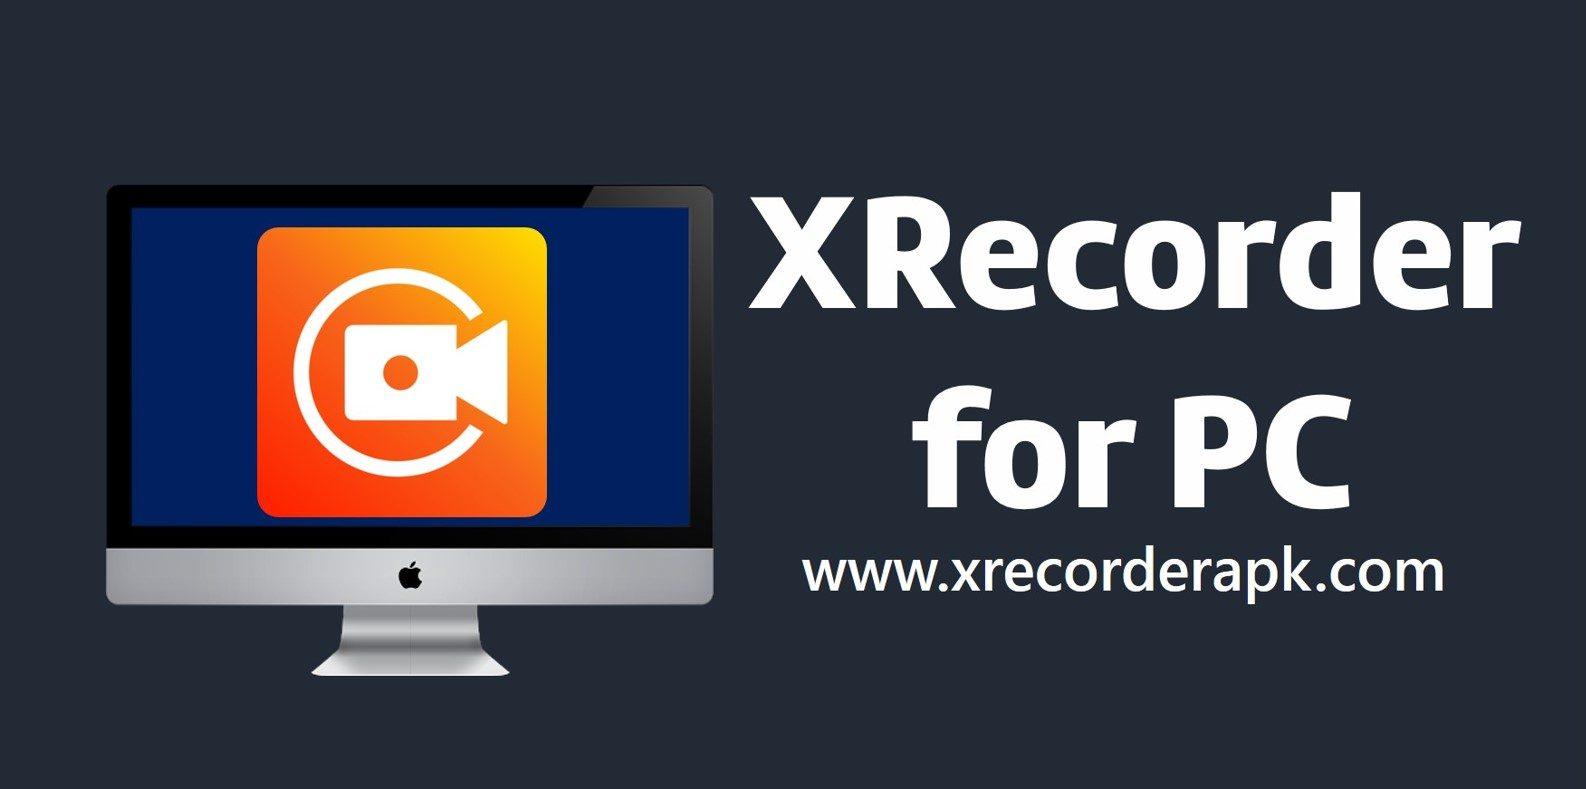 xrecorder for pc